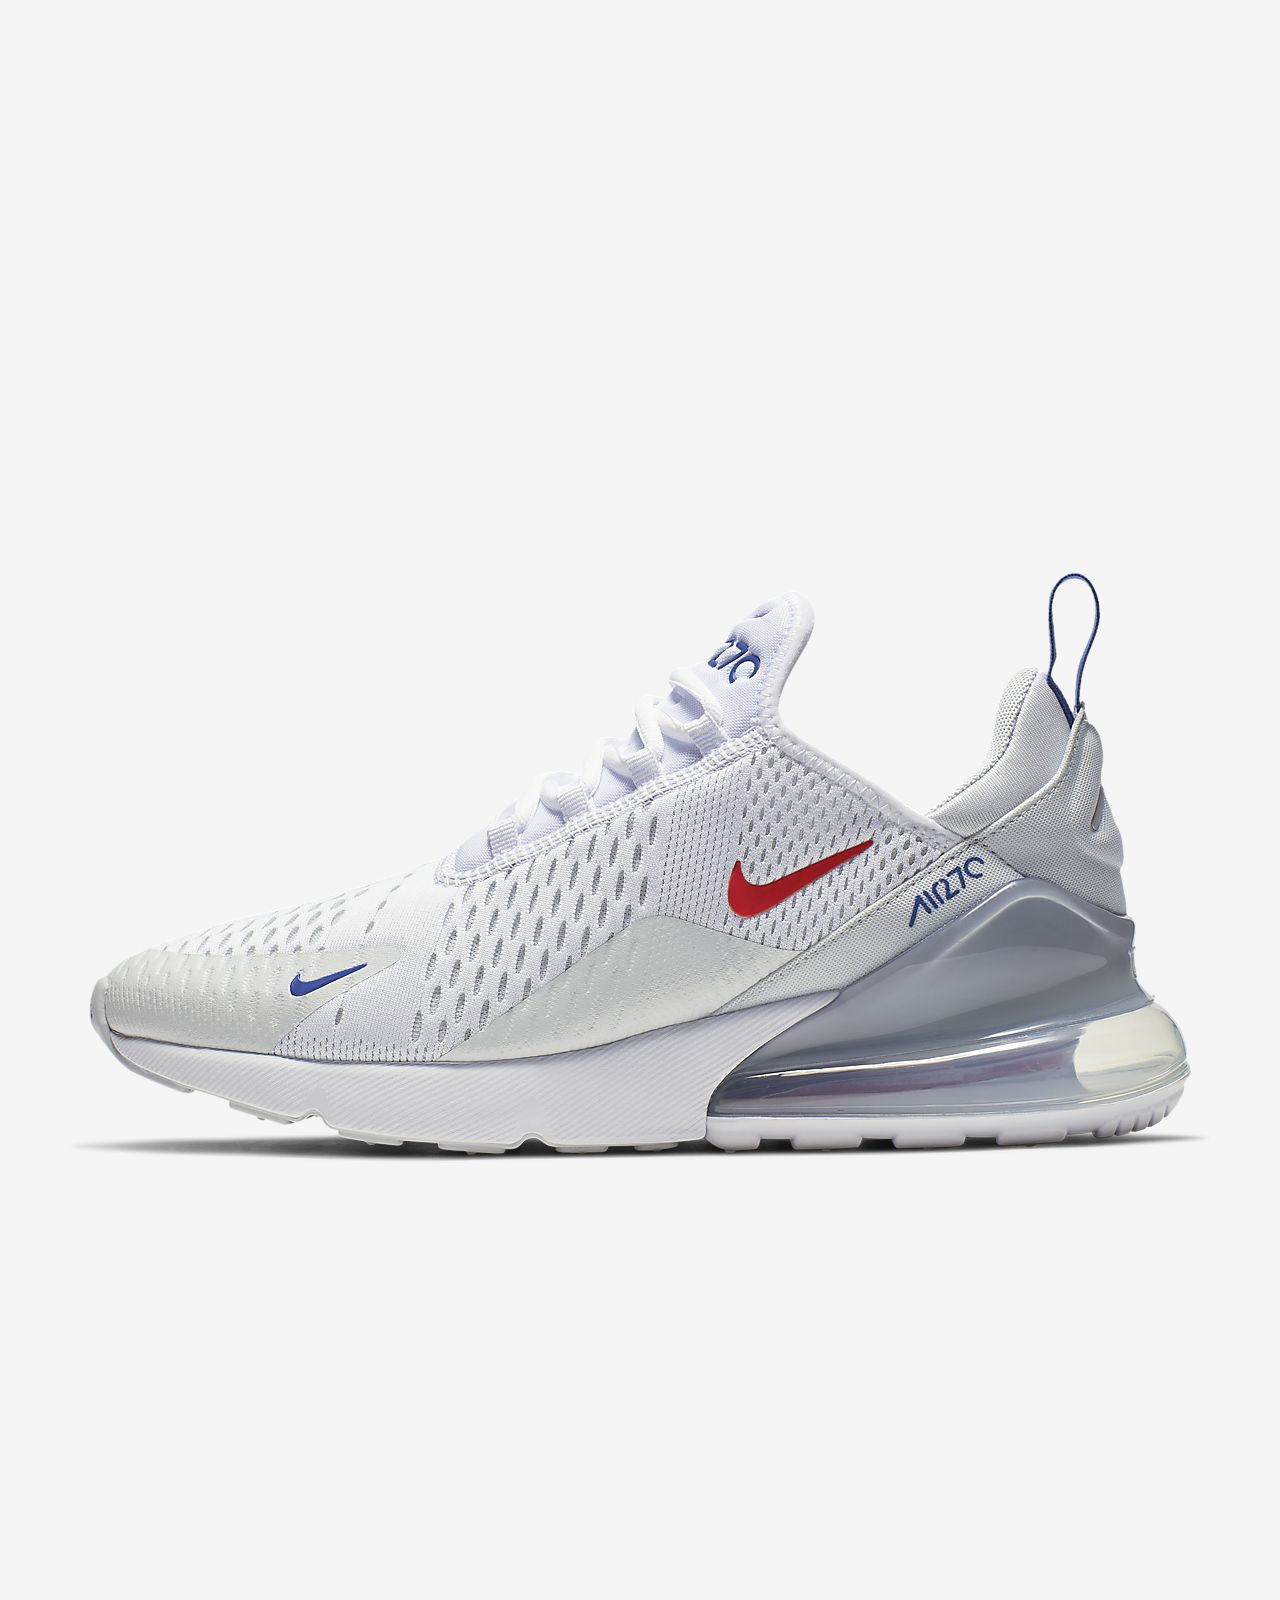 uk availability 04716 6c57e 1 819 Dh. Low Resolution Chaussure Nike Air Max 270 pour Homme Chaussure  Nike Air Max 270 pour Homme